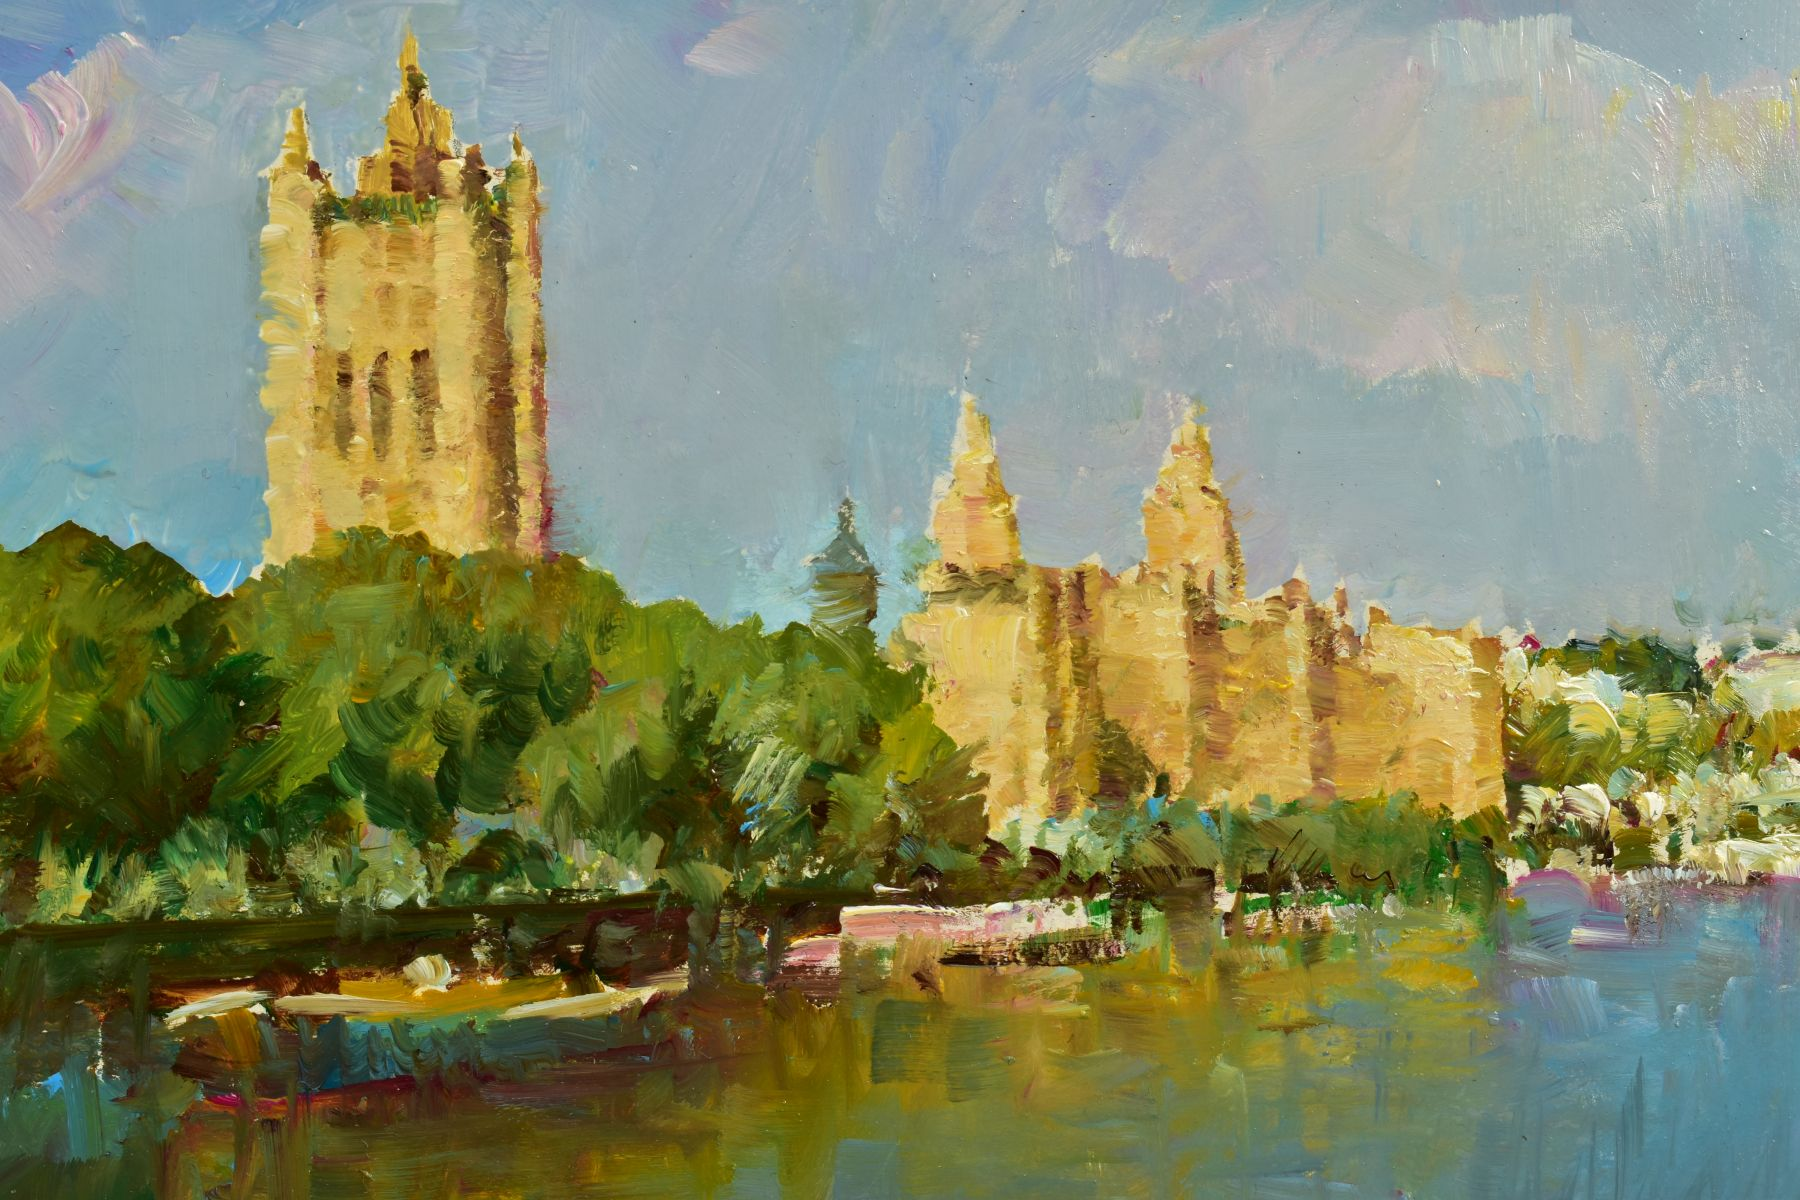 HELIOS GISBERT (SPANISH 1958), 'The Thames, London II', an impressionist view of a London skyline, - Image 3 of 5